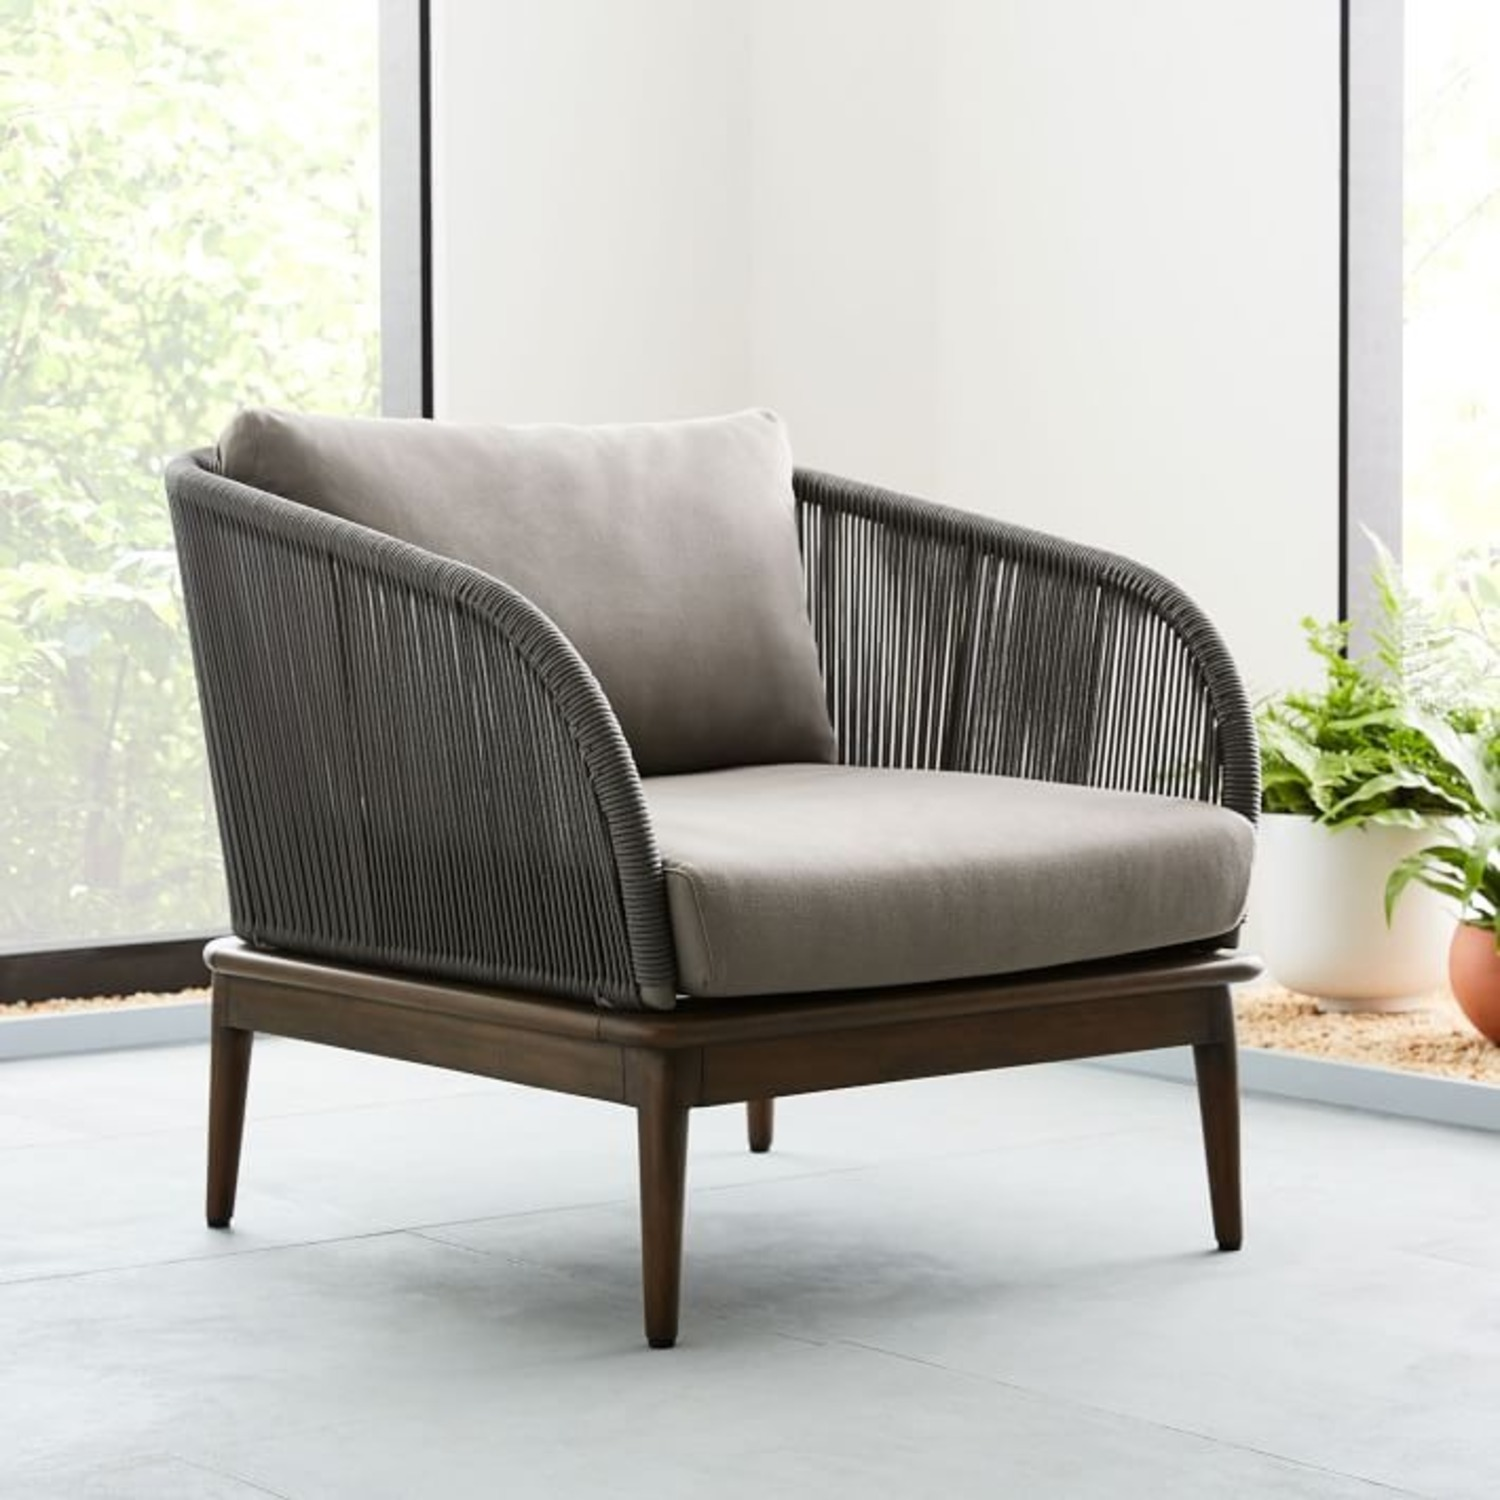 West Elm Corded Weave Outdoor Lounge Chair - image-3